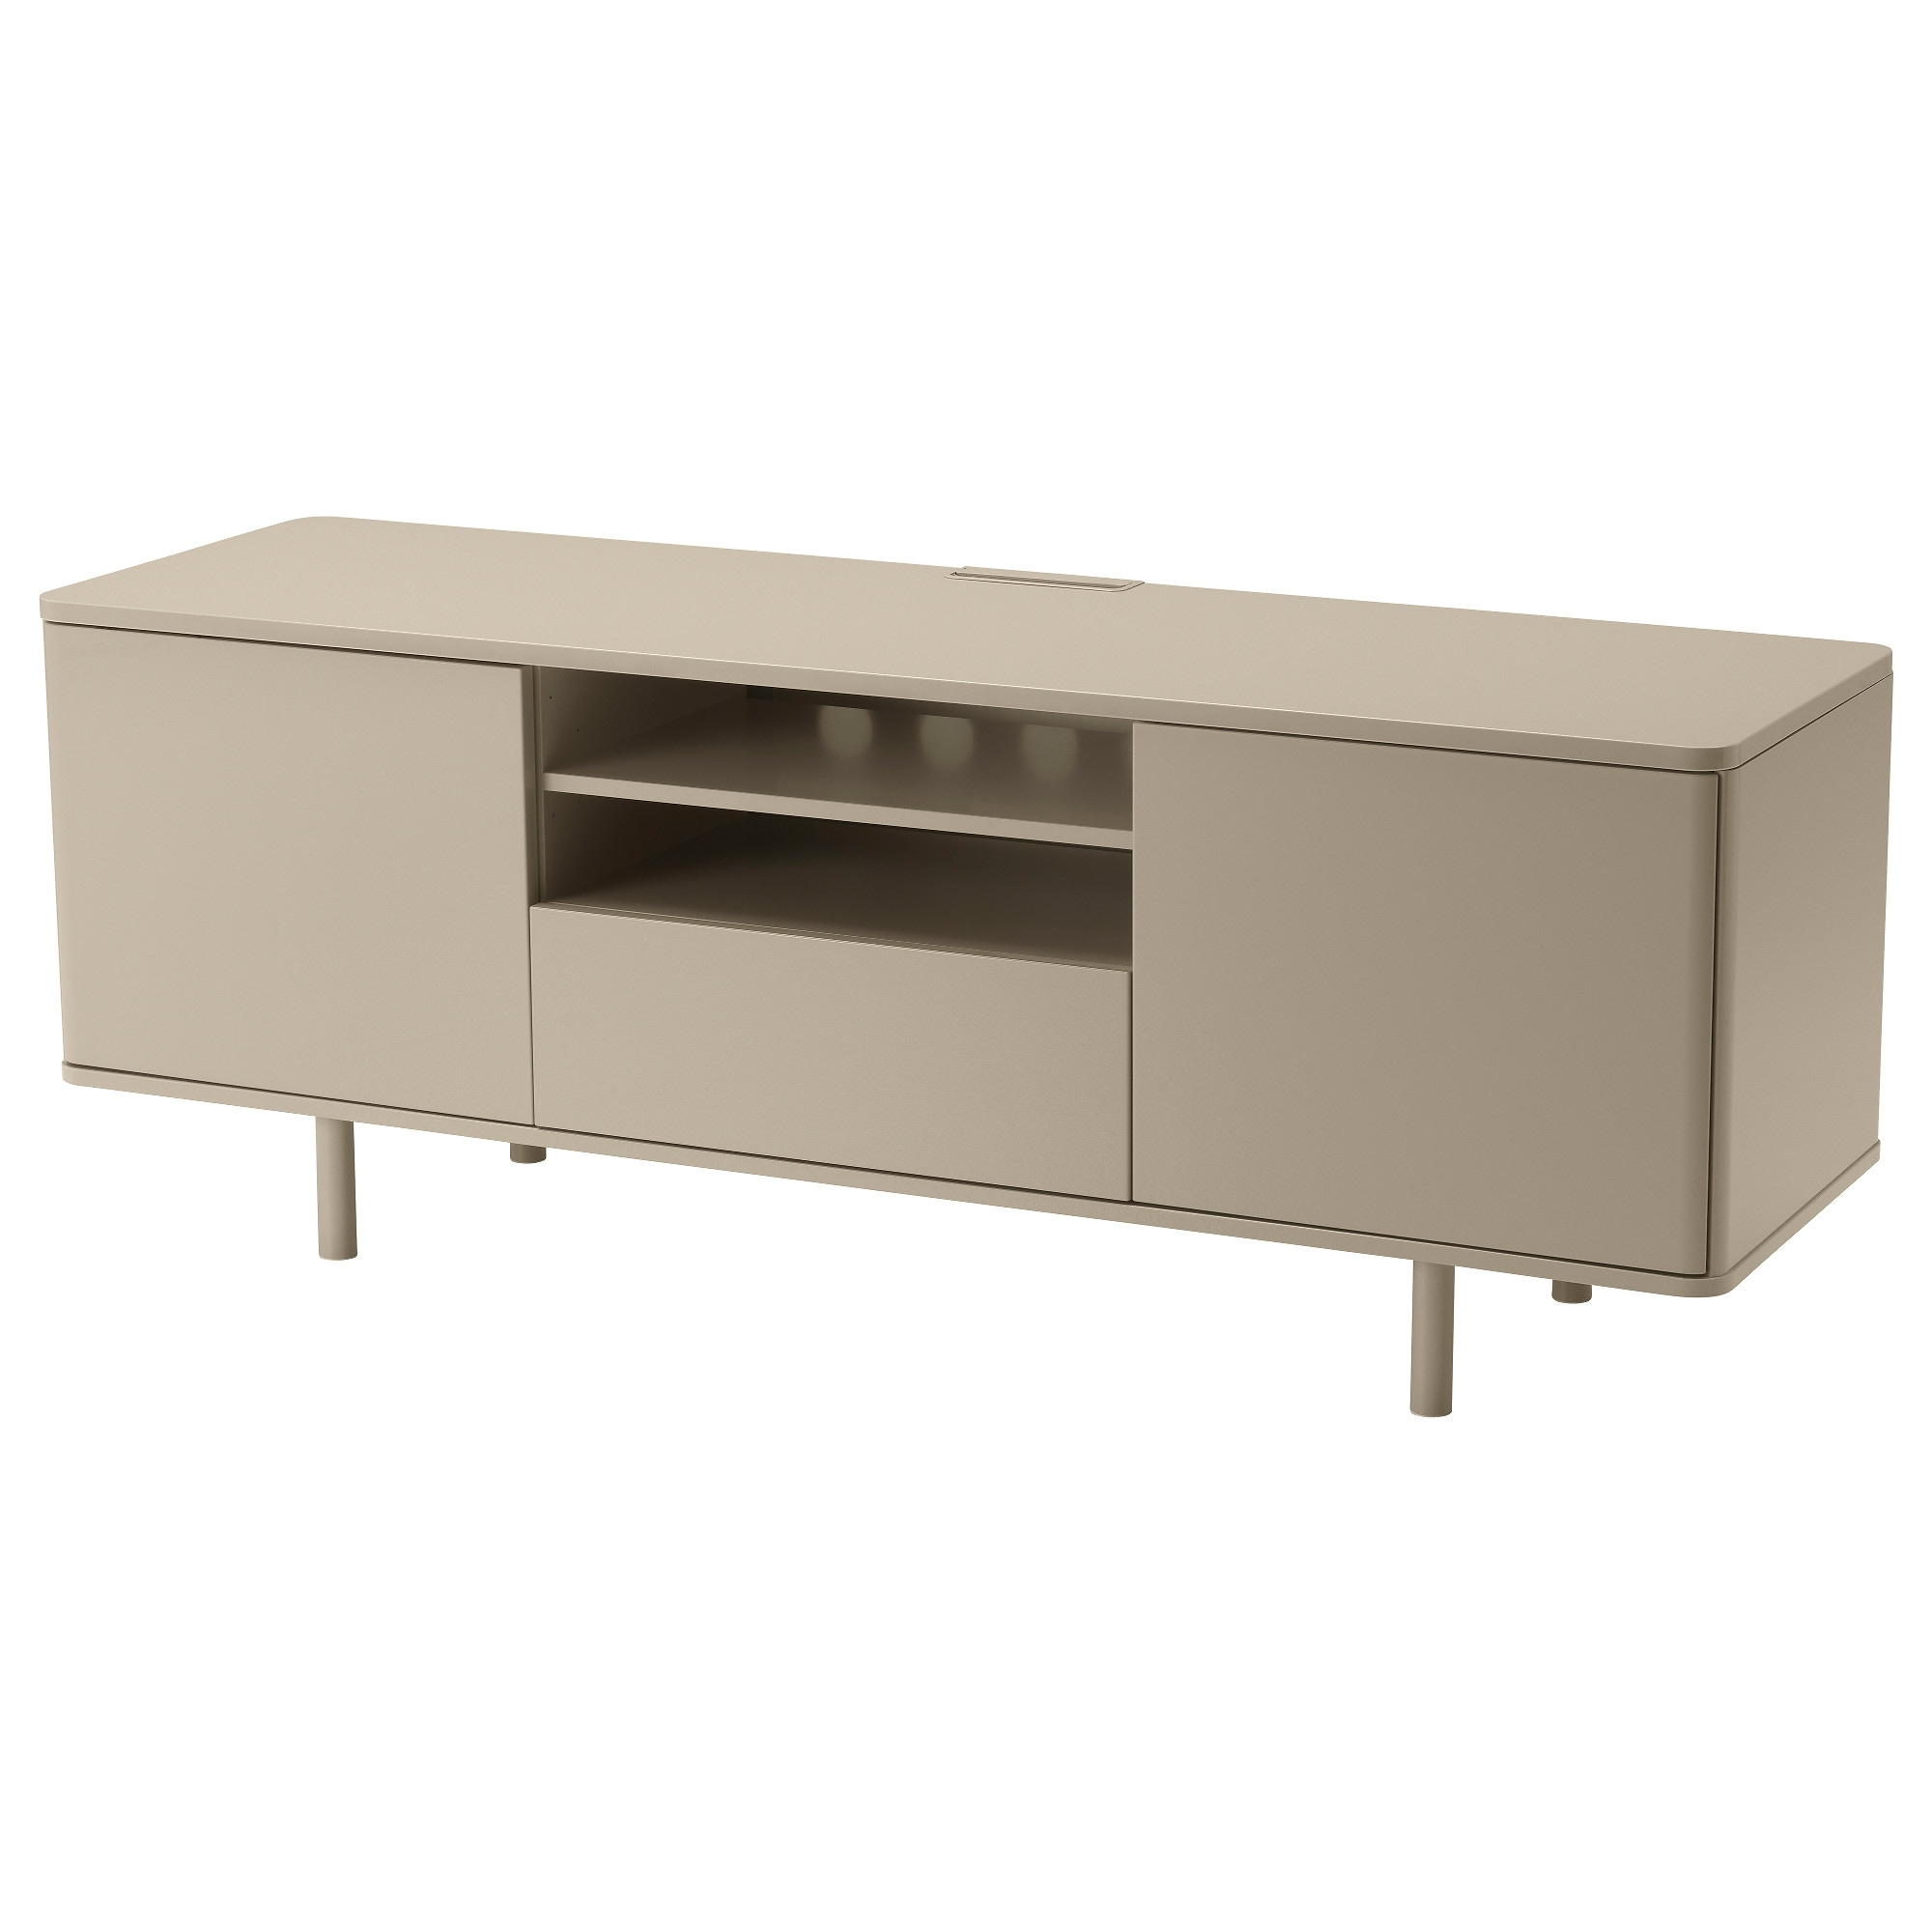 tv stands & entertainment centers - ikea - Mobili Tv Besta Ikea